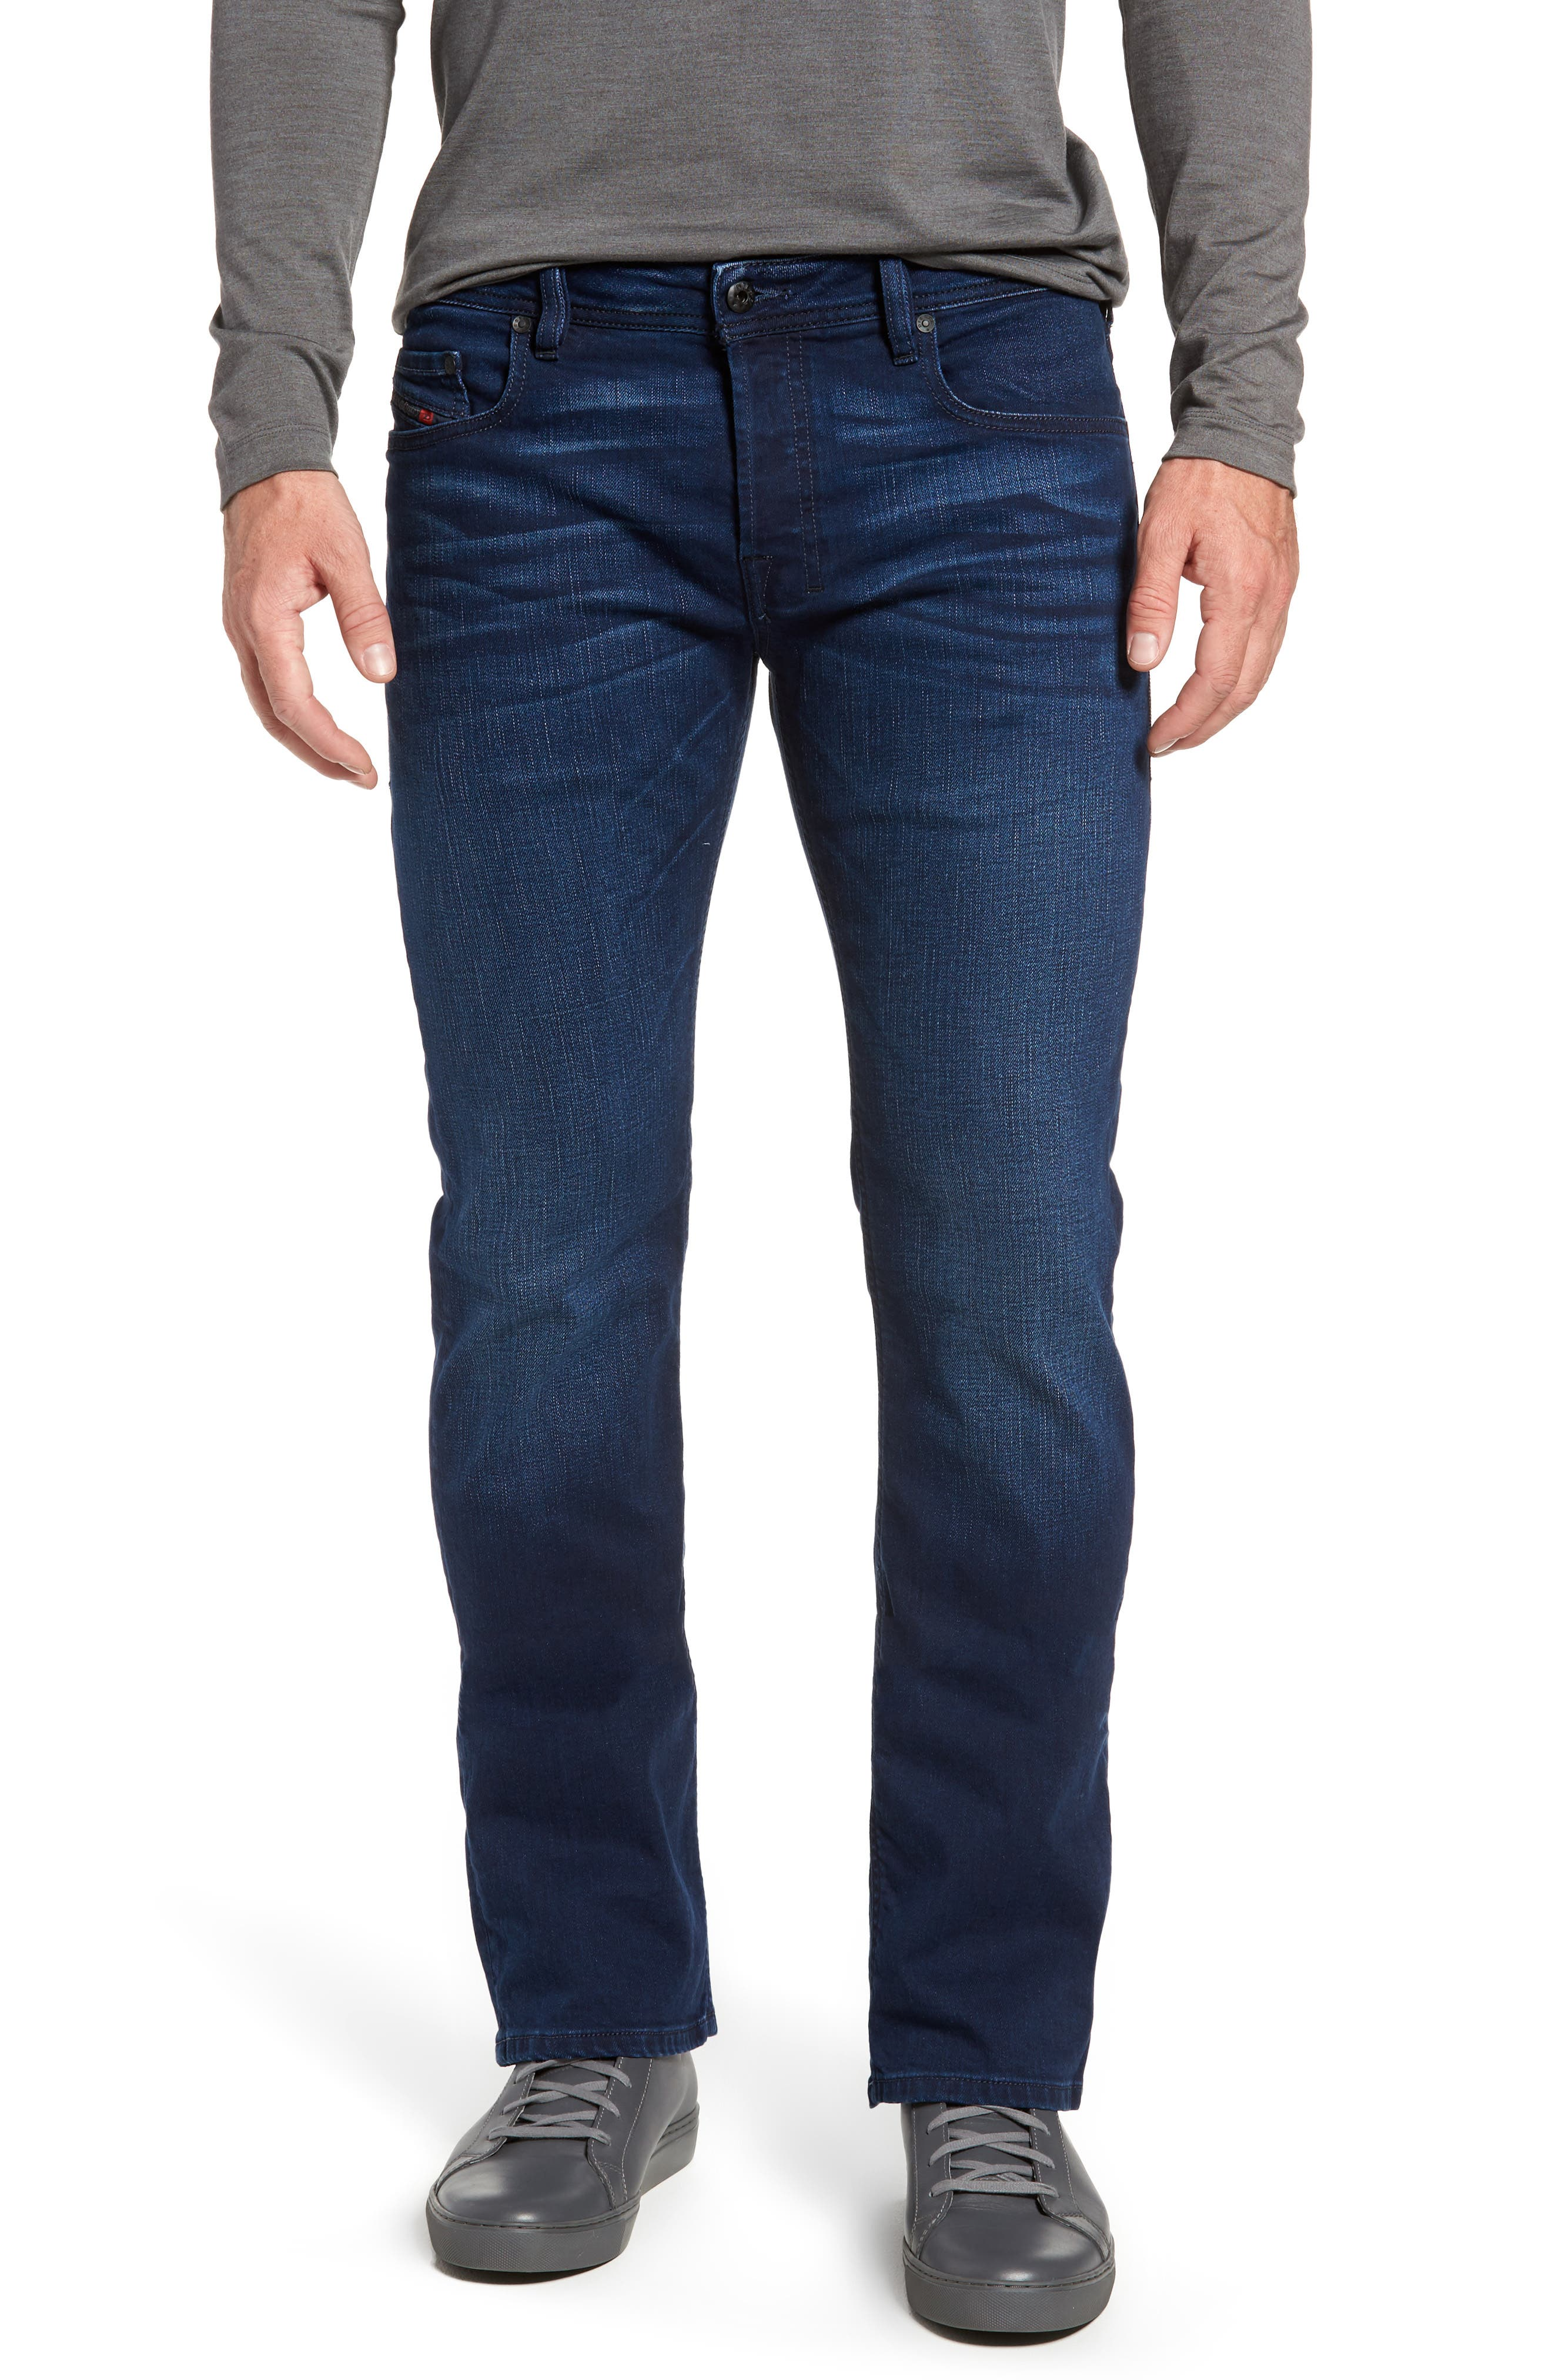 Alternate Image 1 Selected - DIESEL® Zatiny Bootcut Jeans (84HJ)